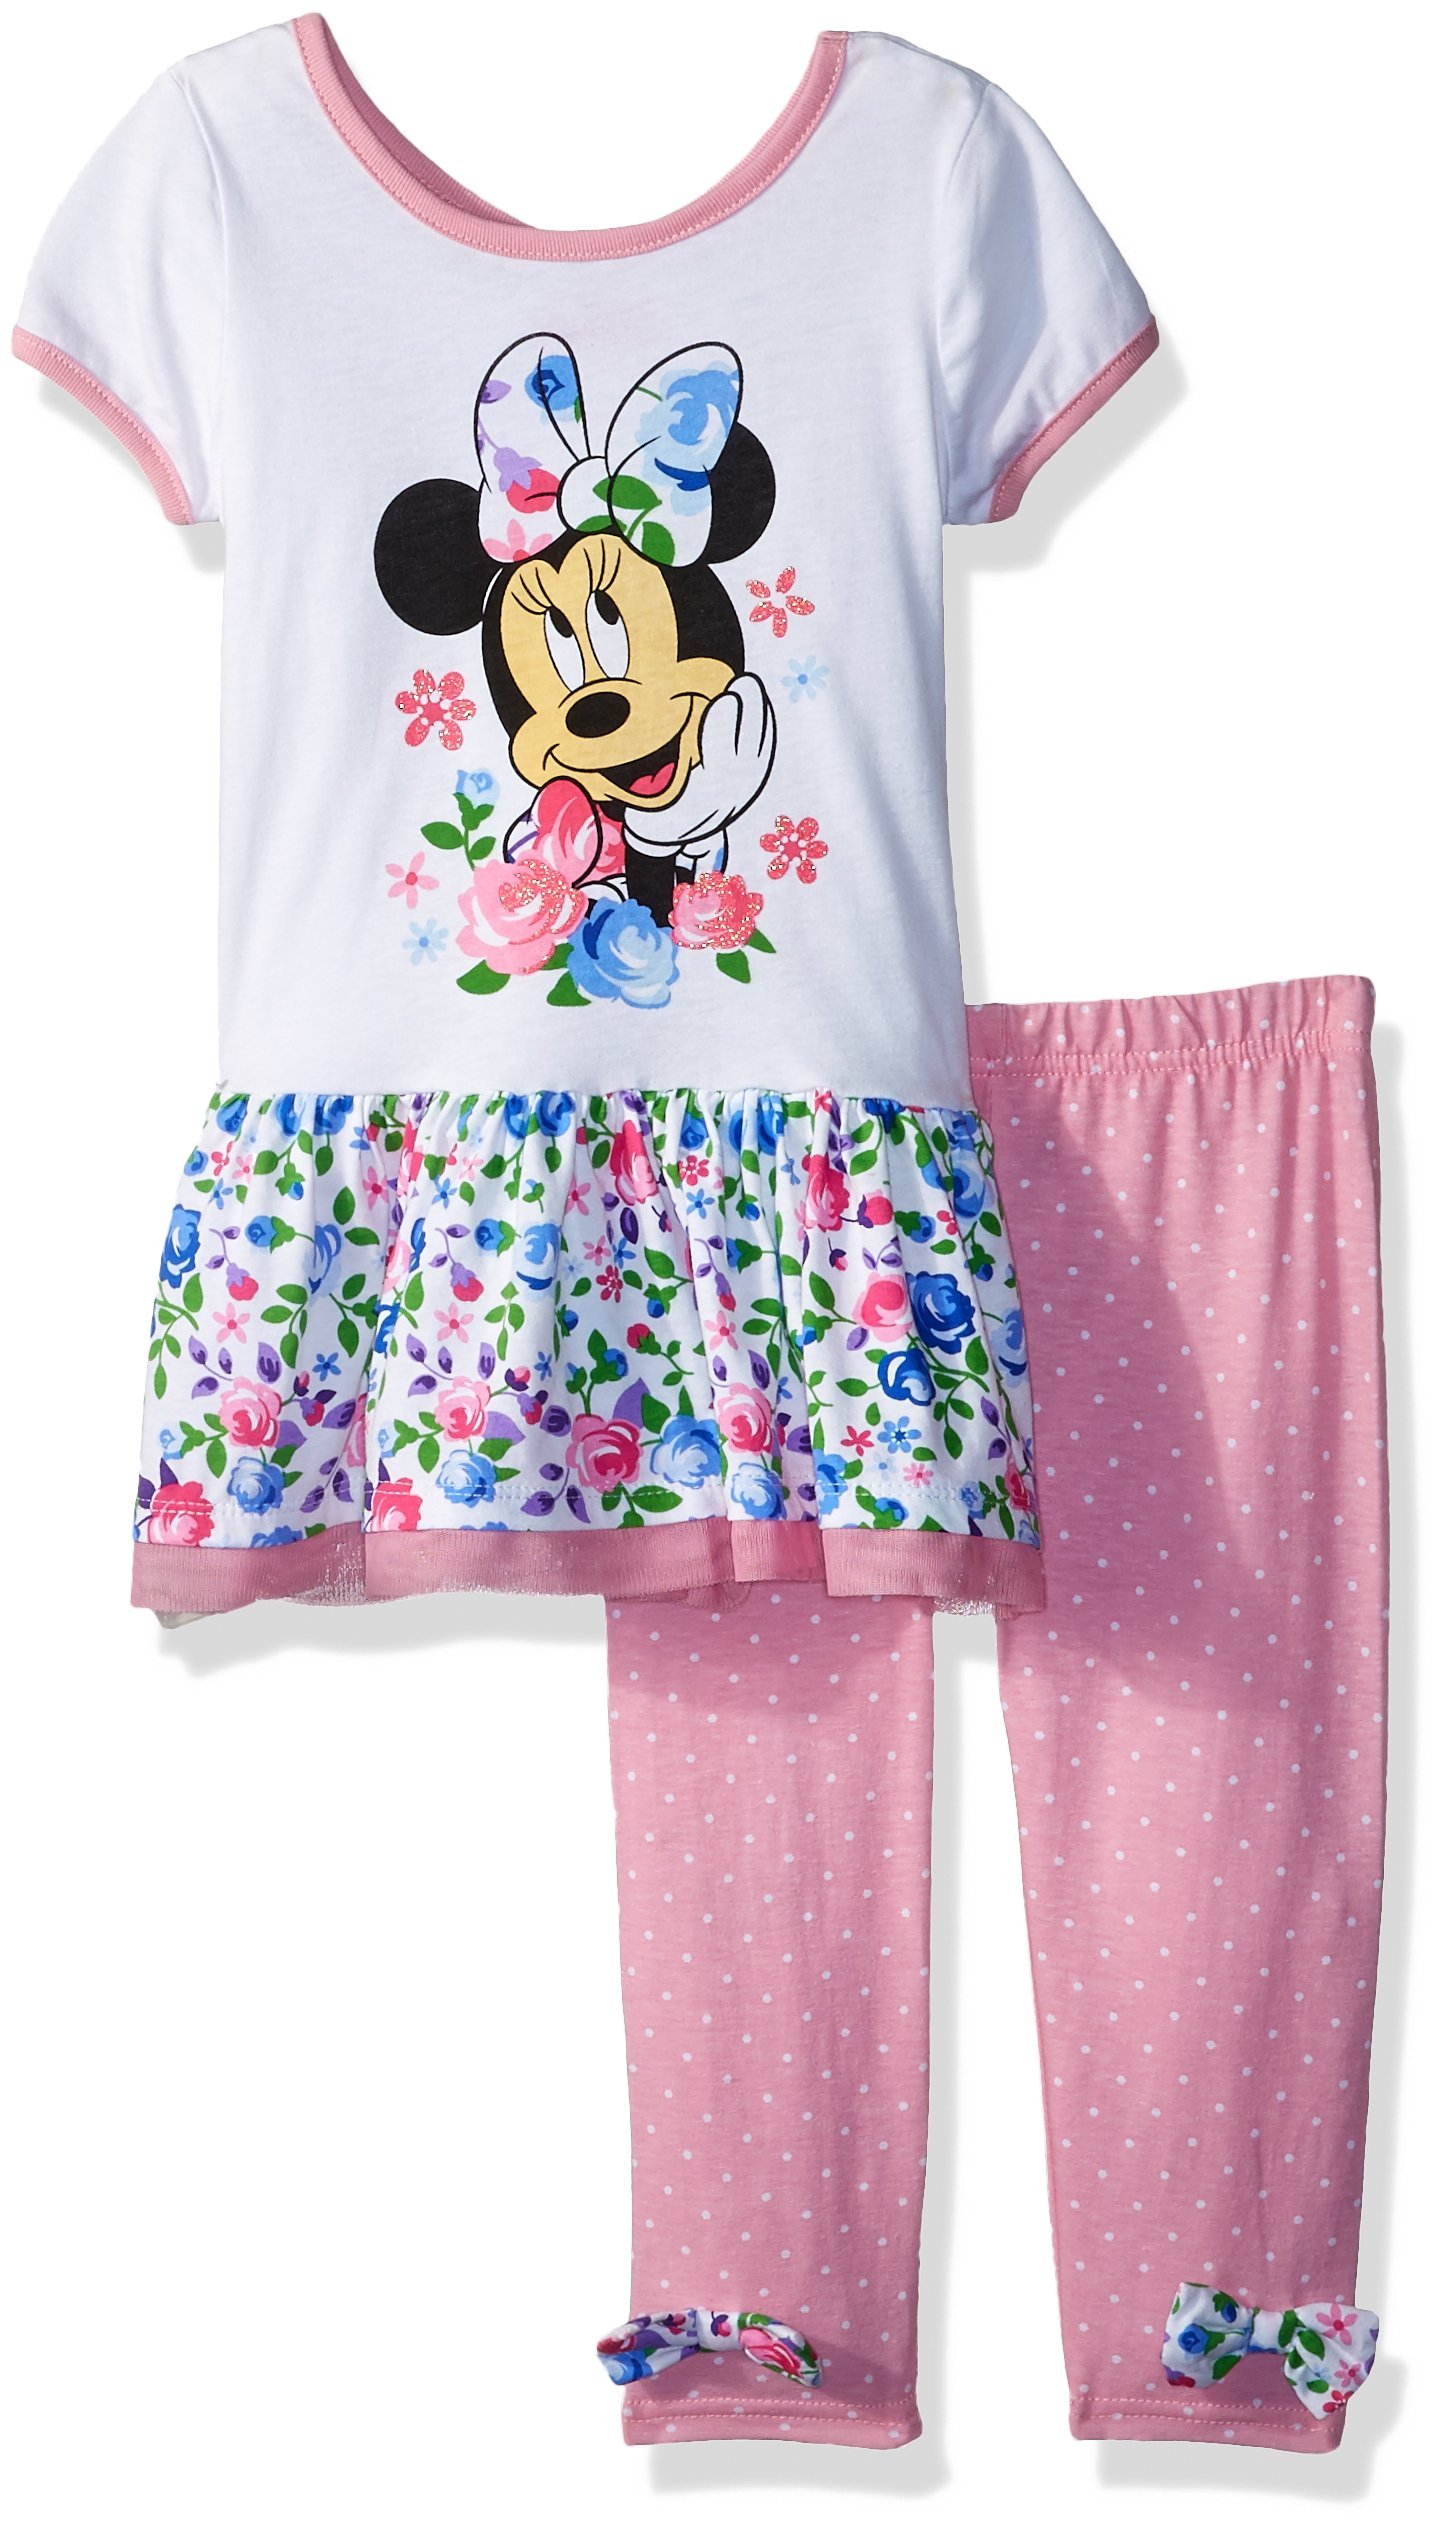 Disney Little Girls' Minnie 2 Piece Legging Set, Prism, 4